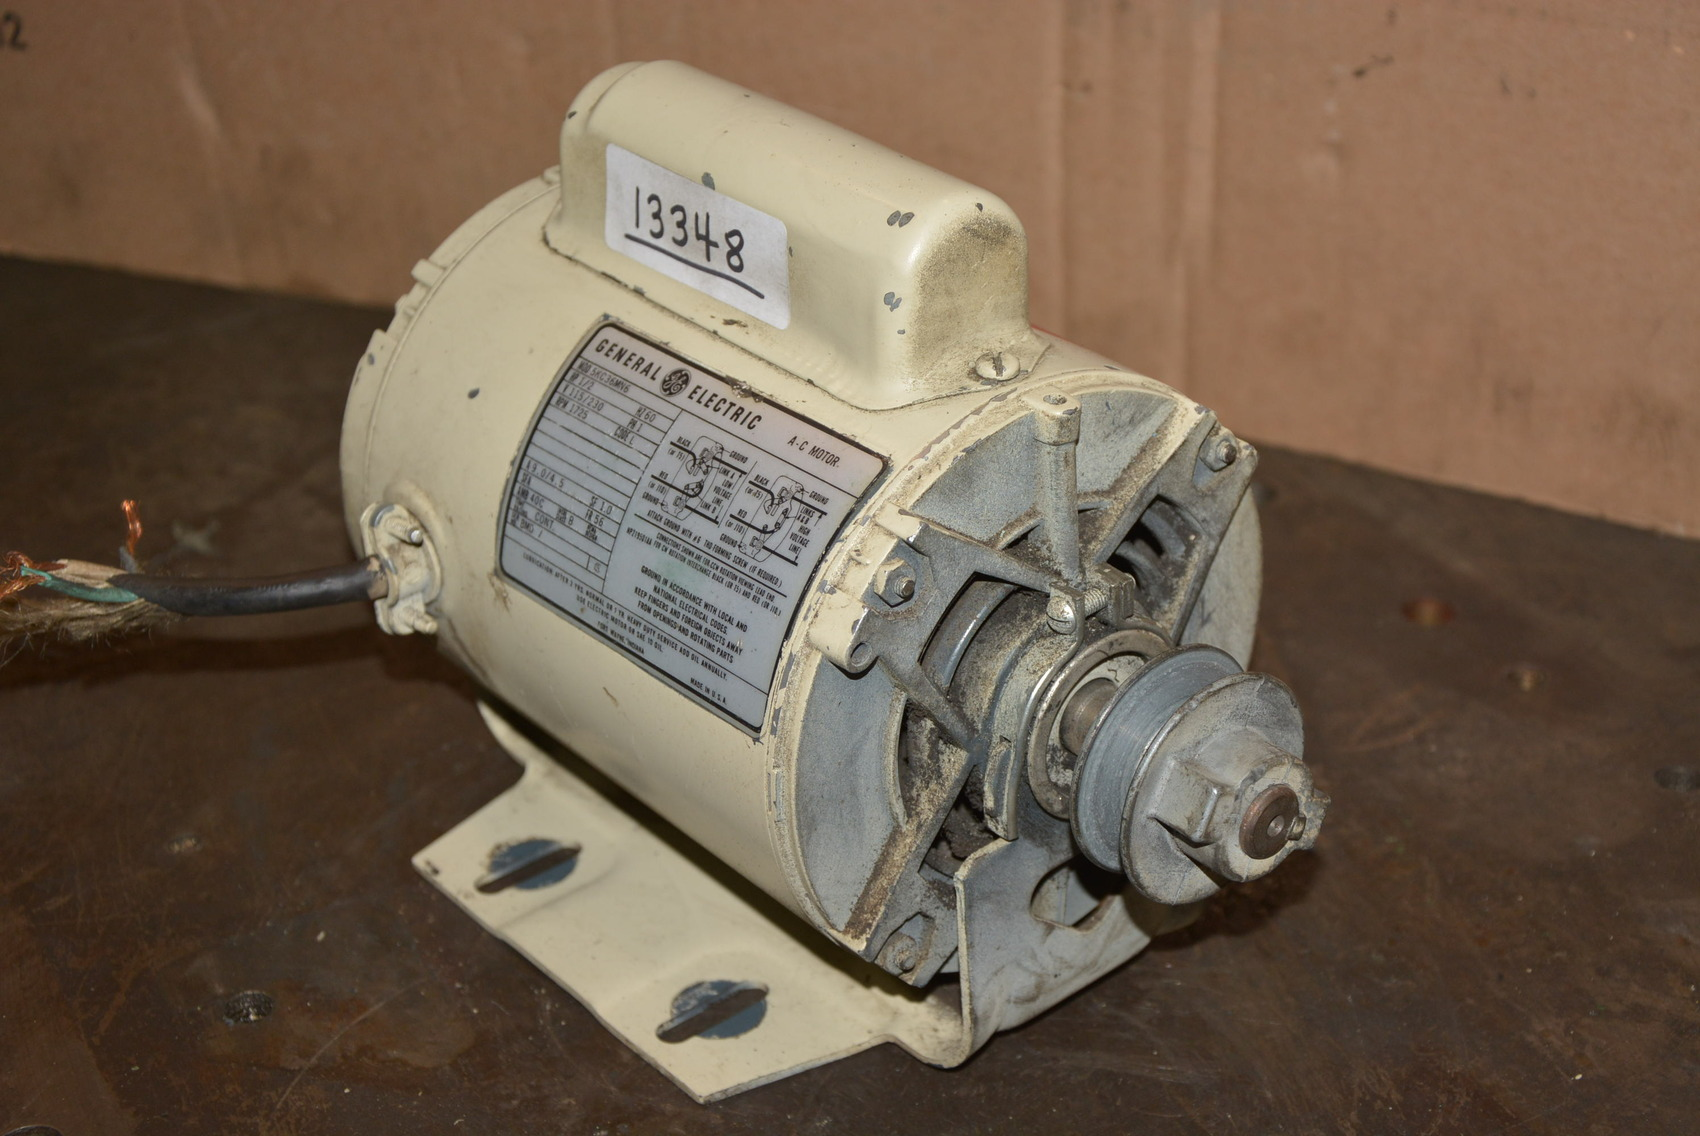 13348 of general electric 5kc36mn6 1 2 hp 115 for 1hp single phase motor